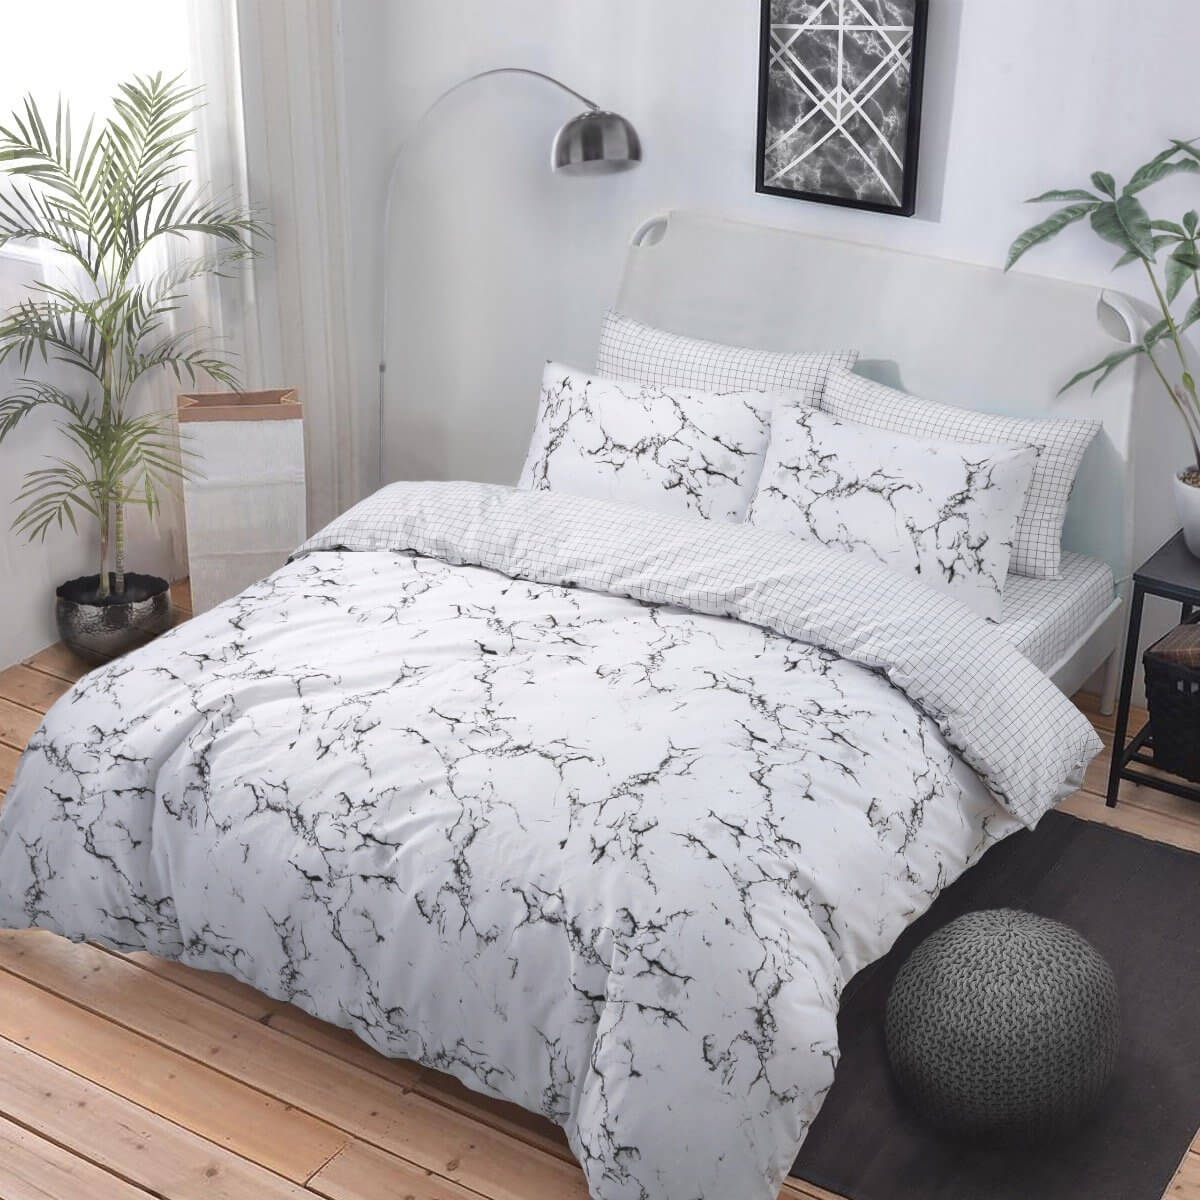 Marble Grey Bedding - Reversible Duvet Cover and Pillowcase Set